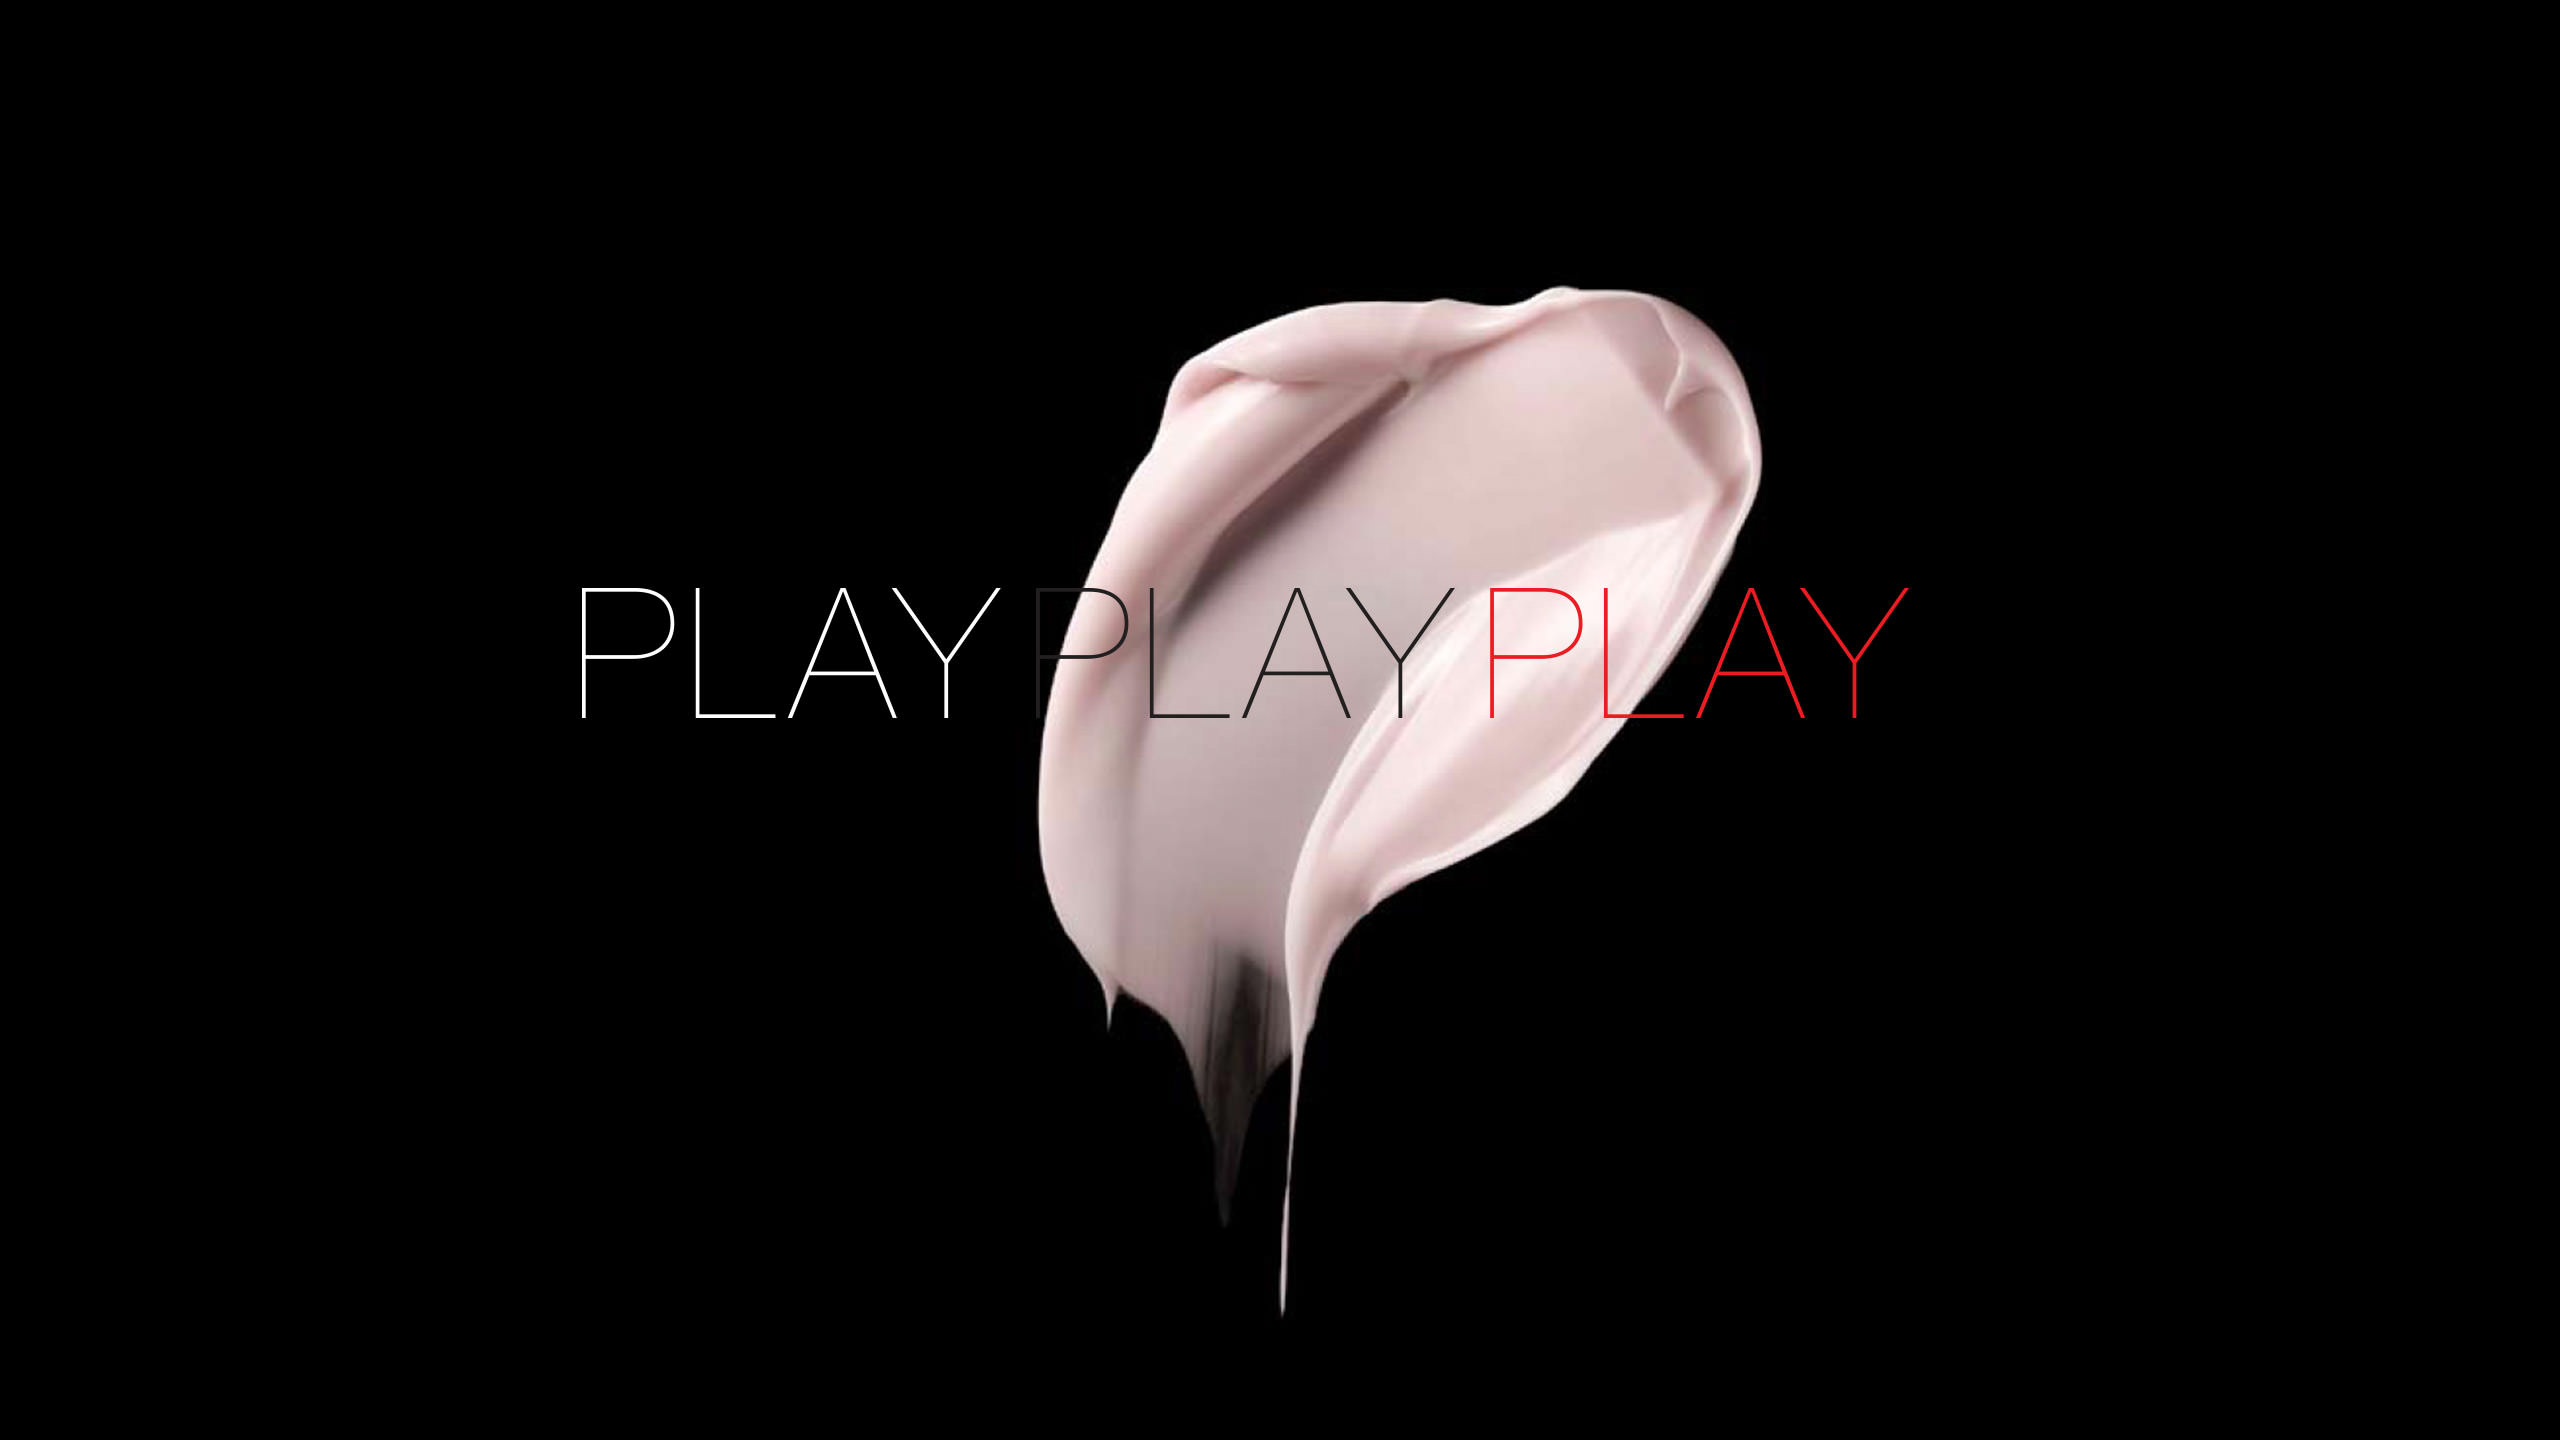 Sephora Retail Brand presenting Play Pink Campaign